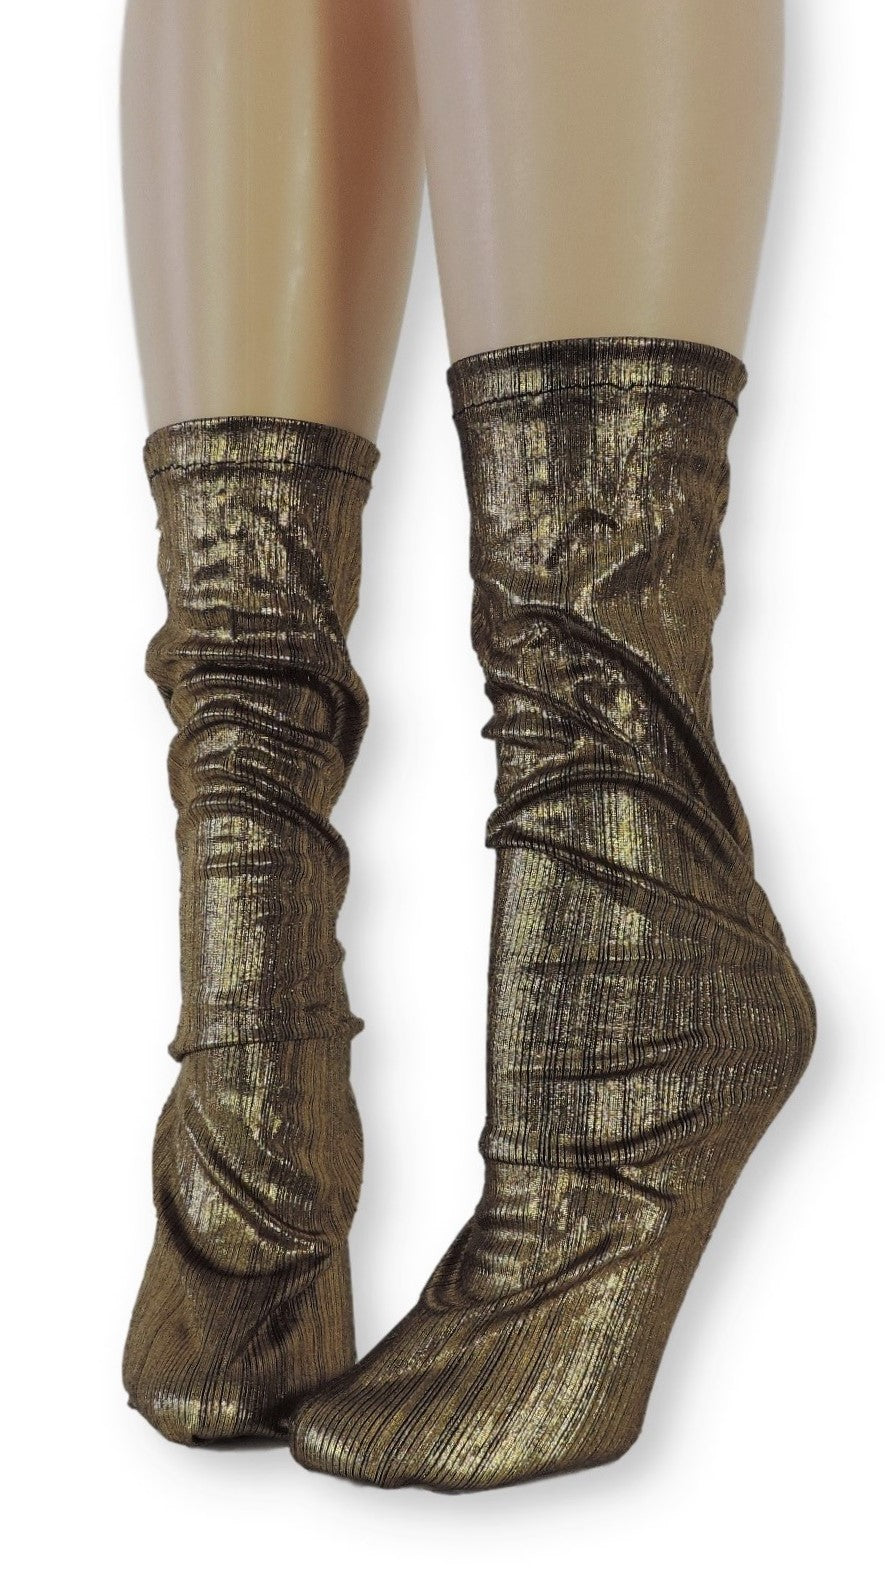 Golden Reflective Socks - Global Trendz Fashion®